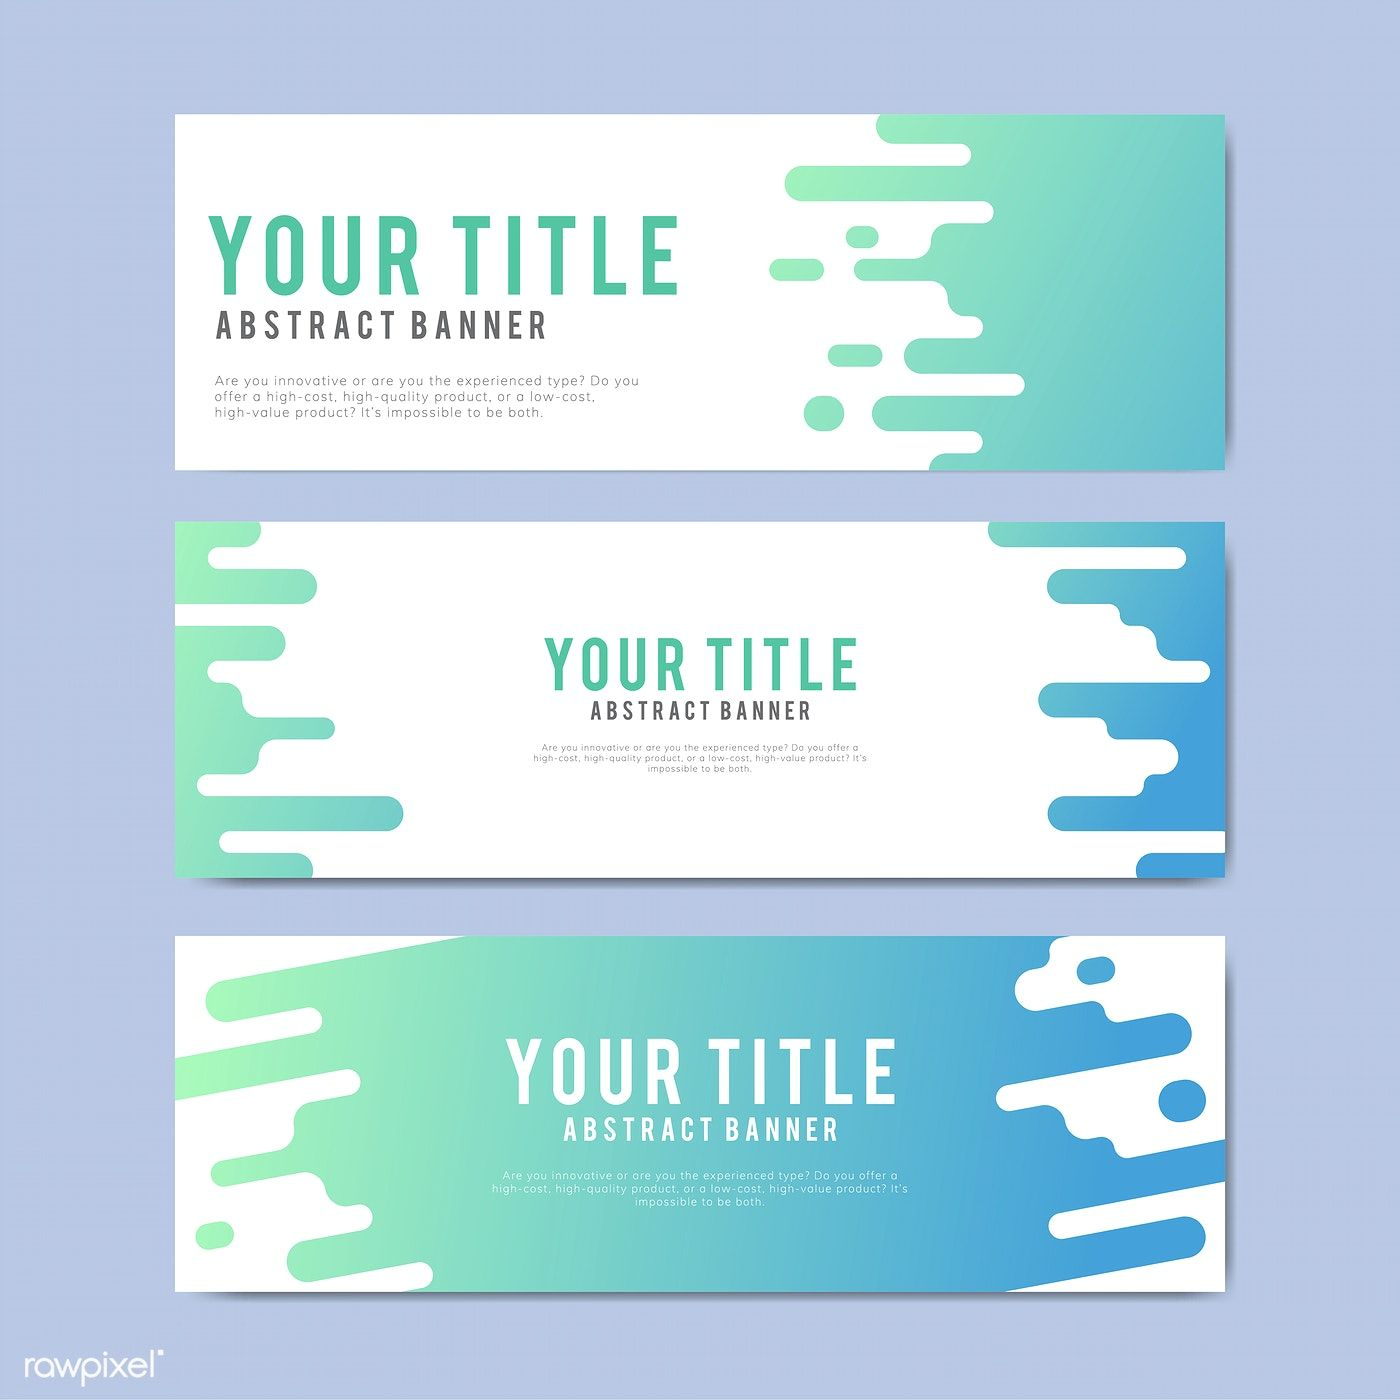 colorful and abstract banner design templates free image by